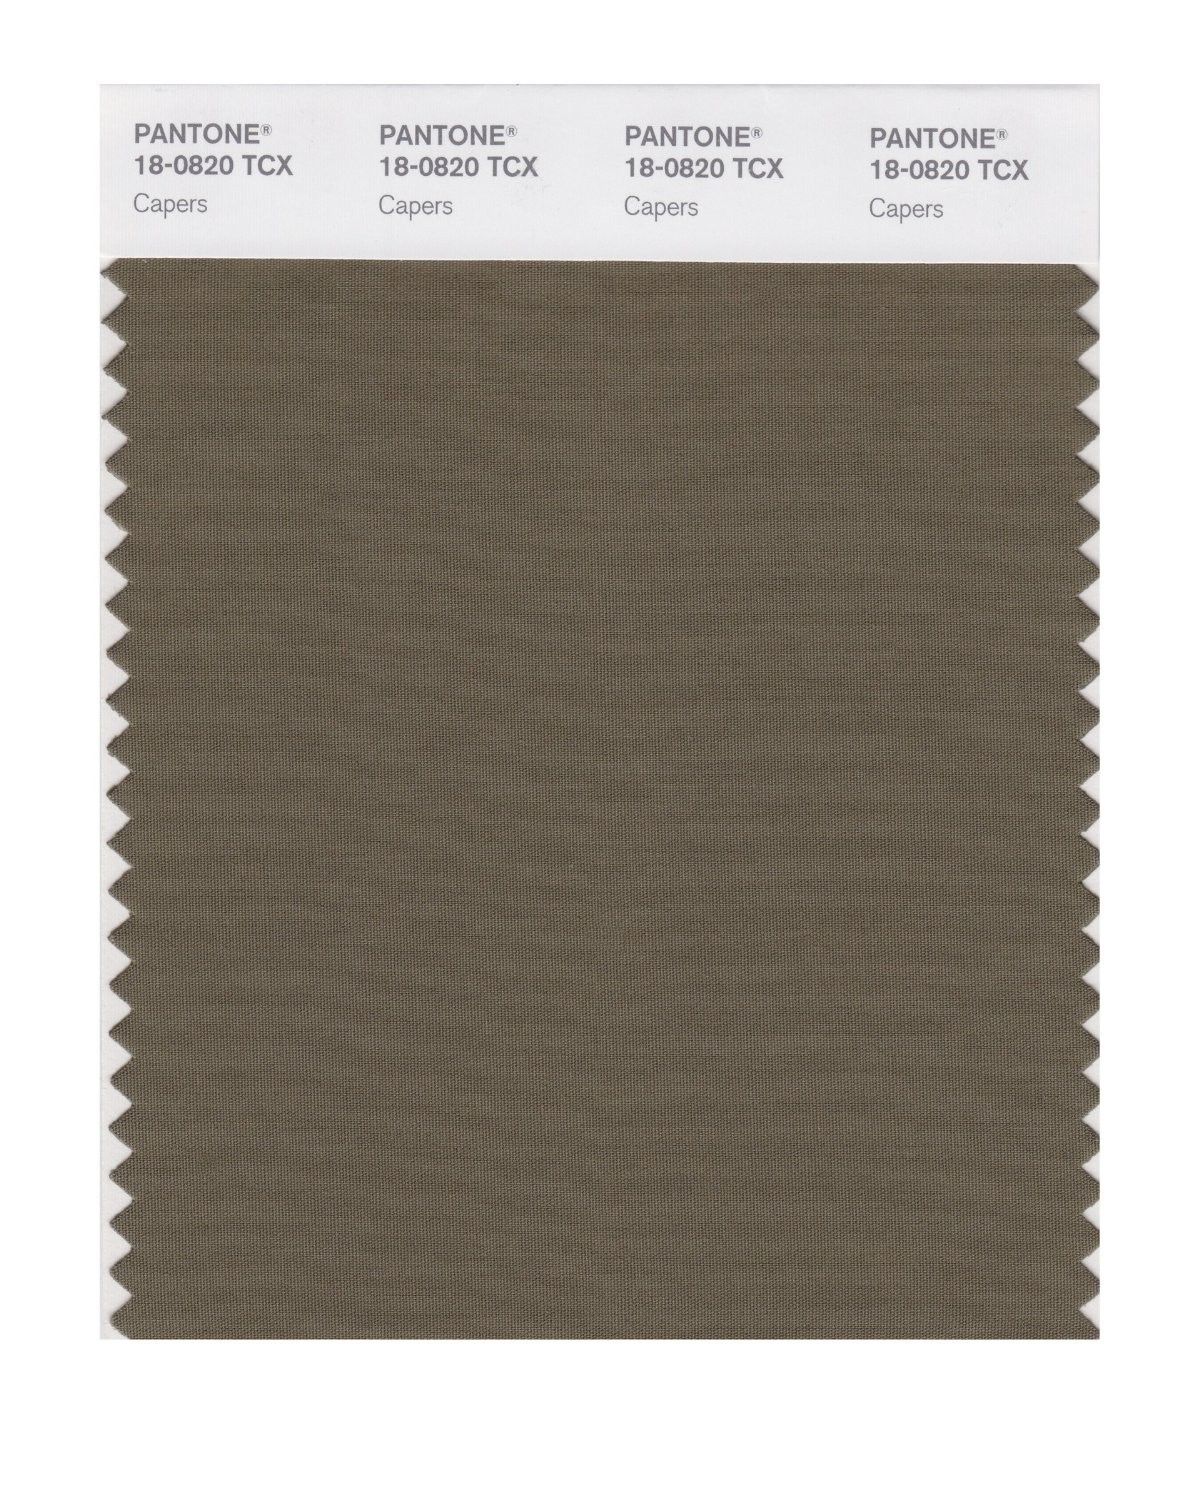 Pantone 18-0820 TCX Swatch Card Capers